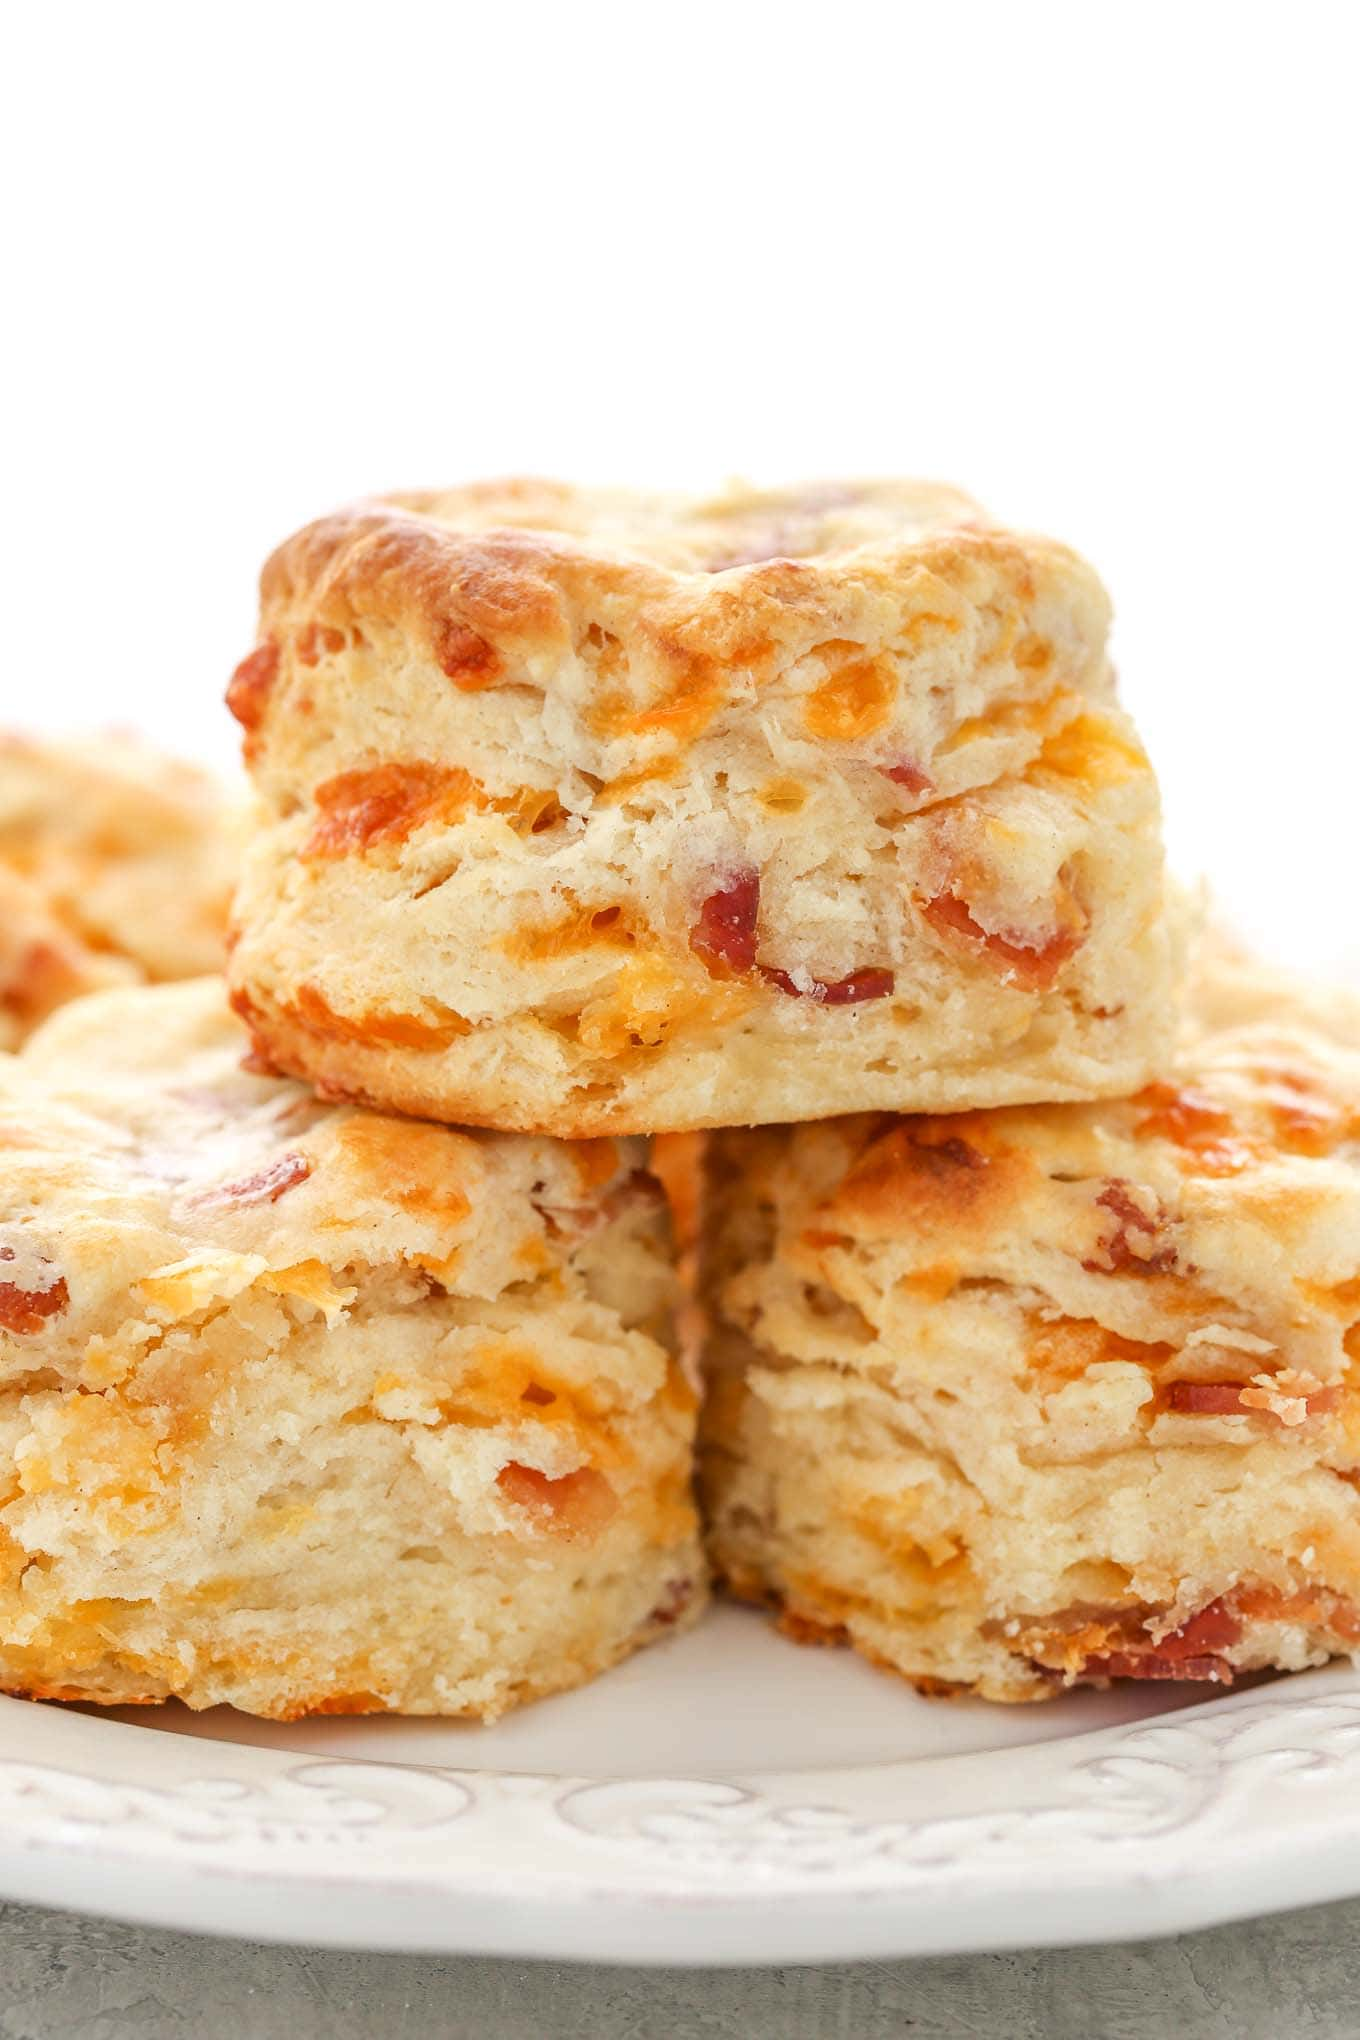 Soft, tall, buttery, and flaky buttermilk biscuits filled with cheddar cheese and bacon. These Bacon Cheddar Biscuits are perfect for breakfast or dinner!